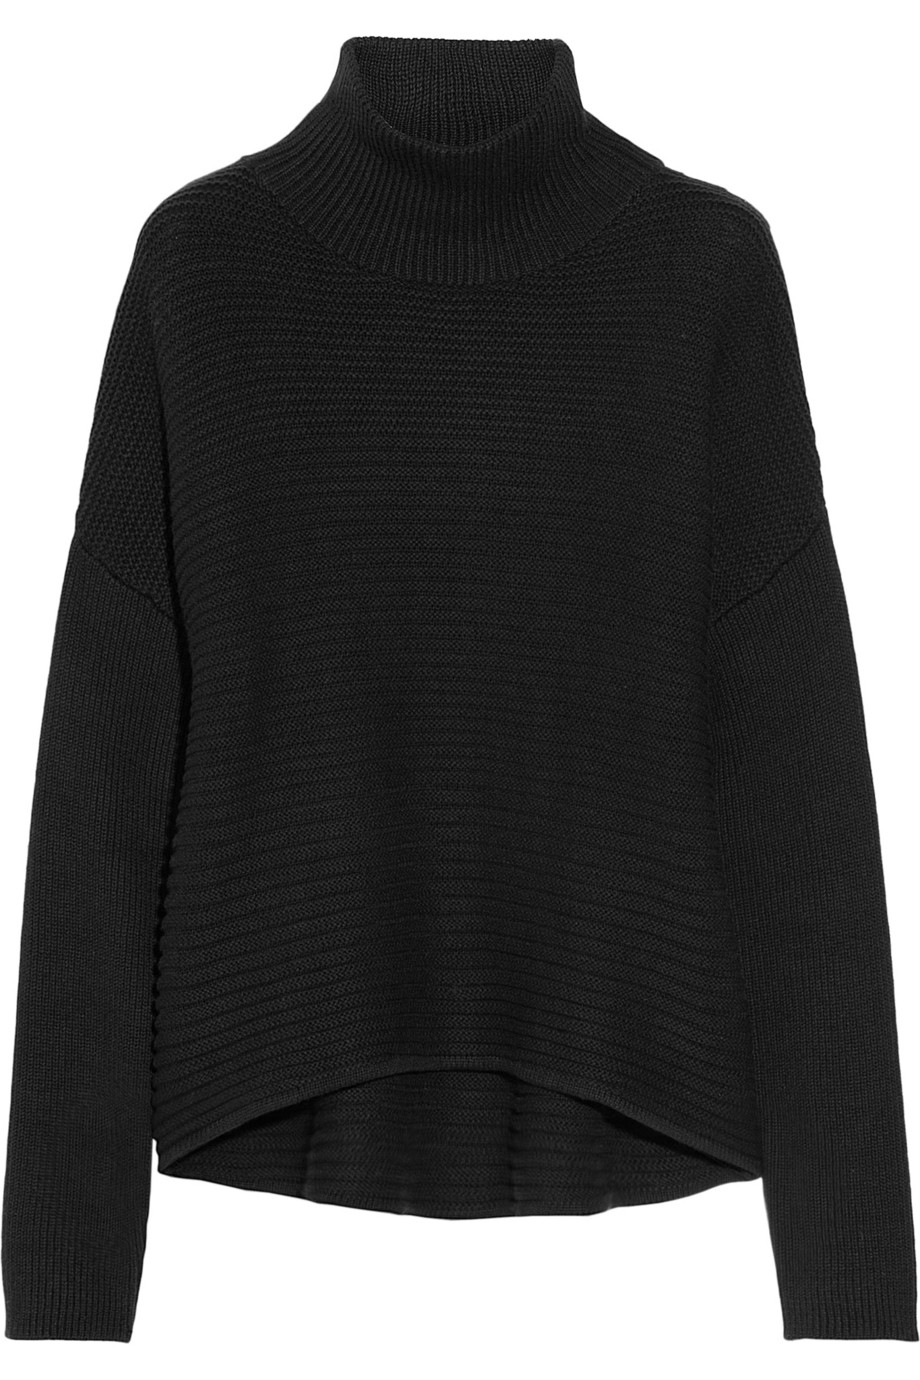 Helmut lang Cotton and Cashmereblend Turtleneck Sweater in Black ...